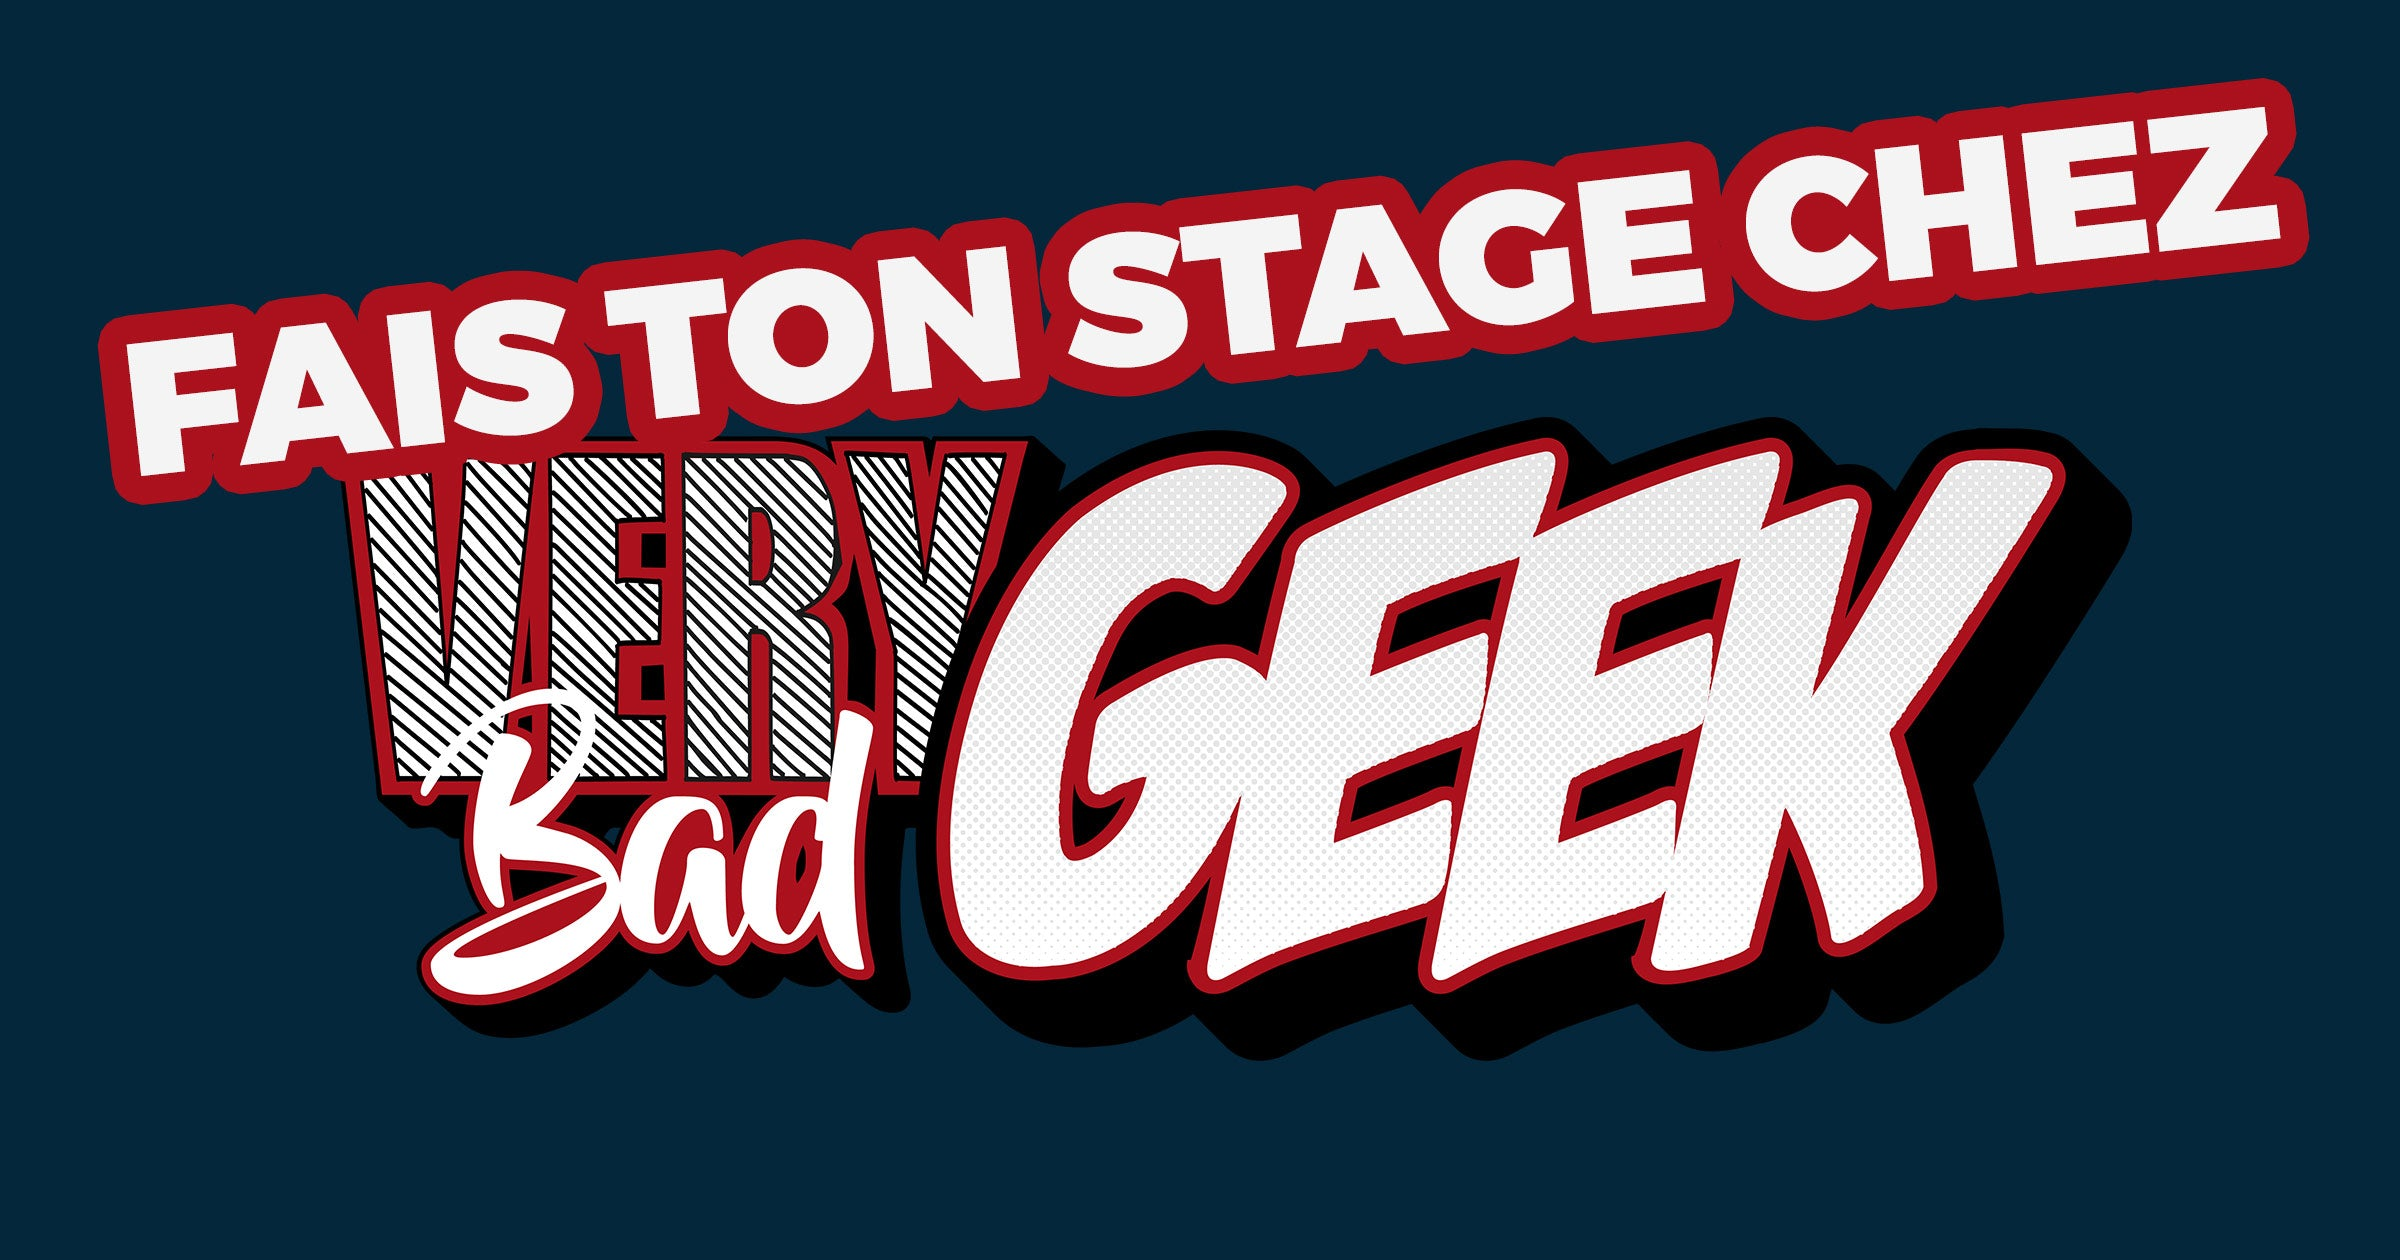 Very Bad Geek Bordeaux recrute en stage